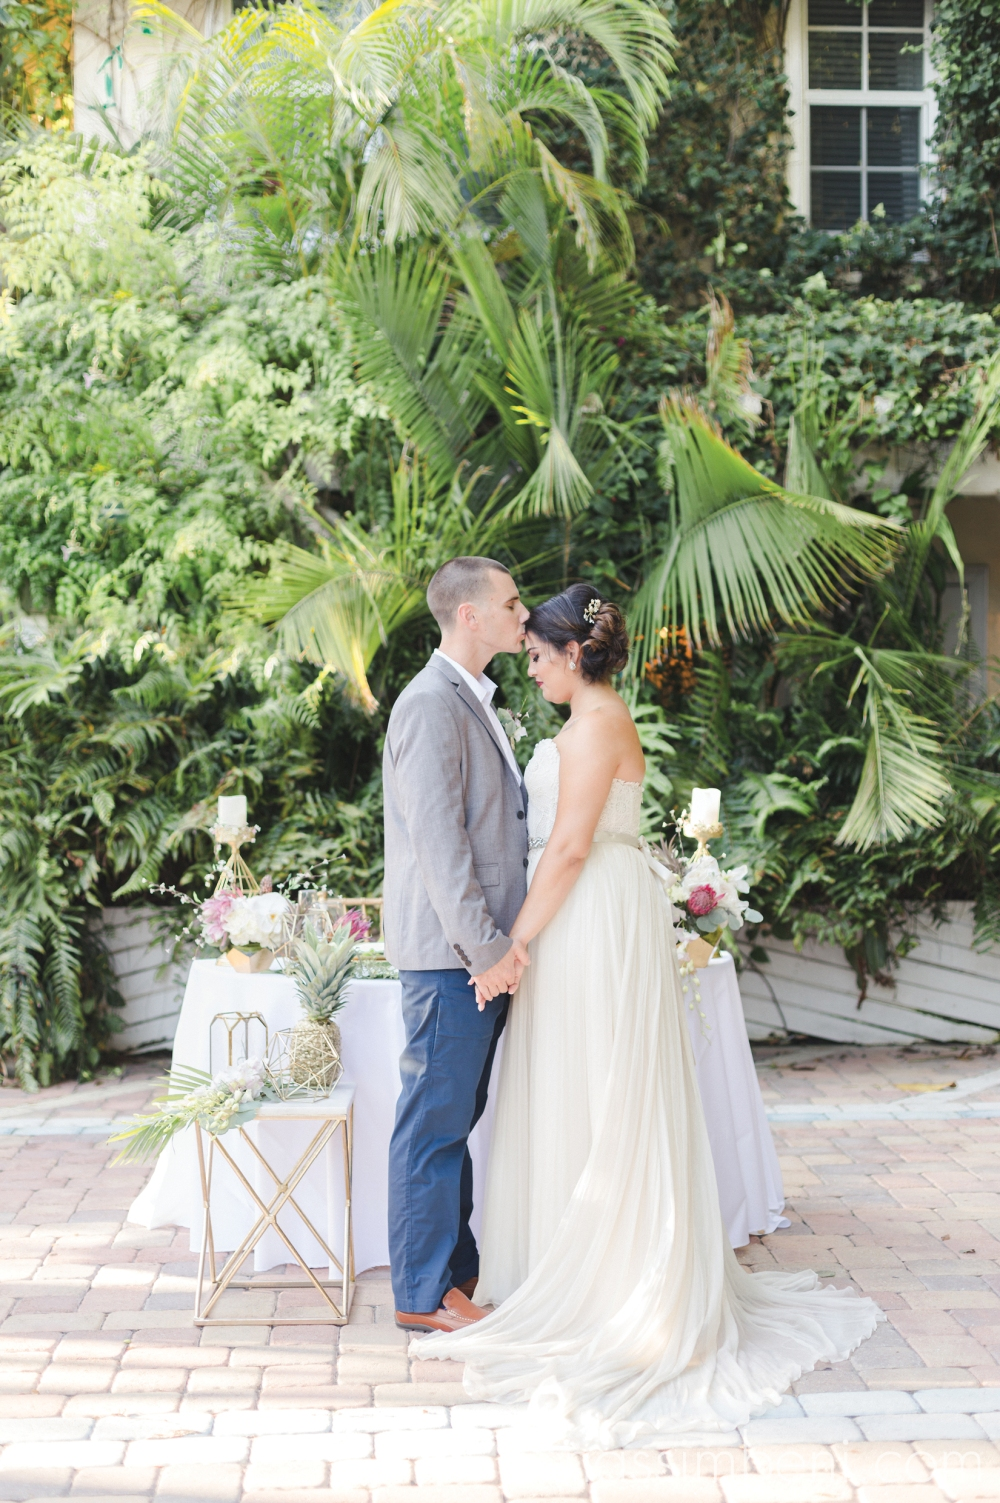 gold-and-geometric-tropical-wedding-inspiration-florida-destination-wedding-port-st-lucie-wedding-photographer-15